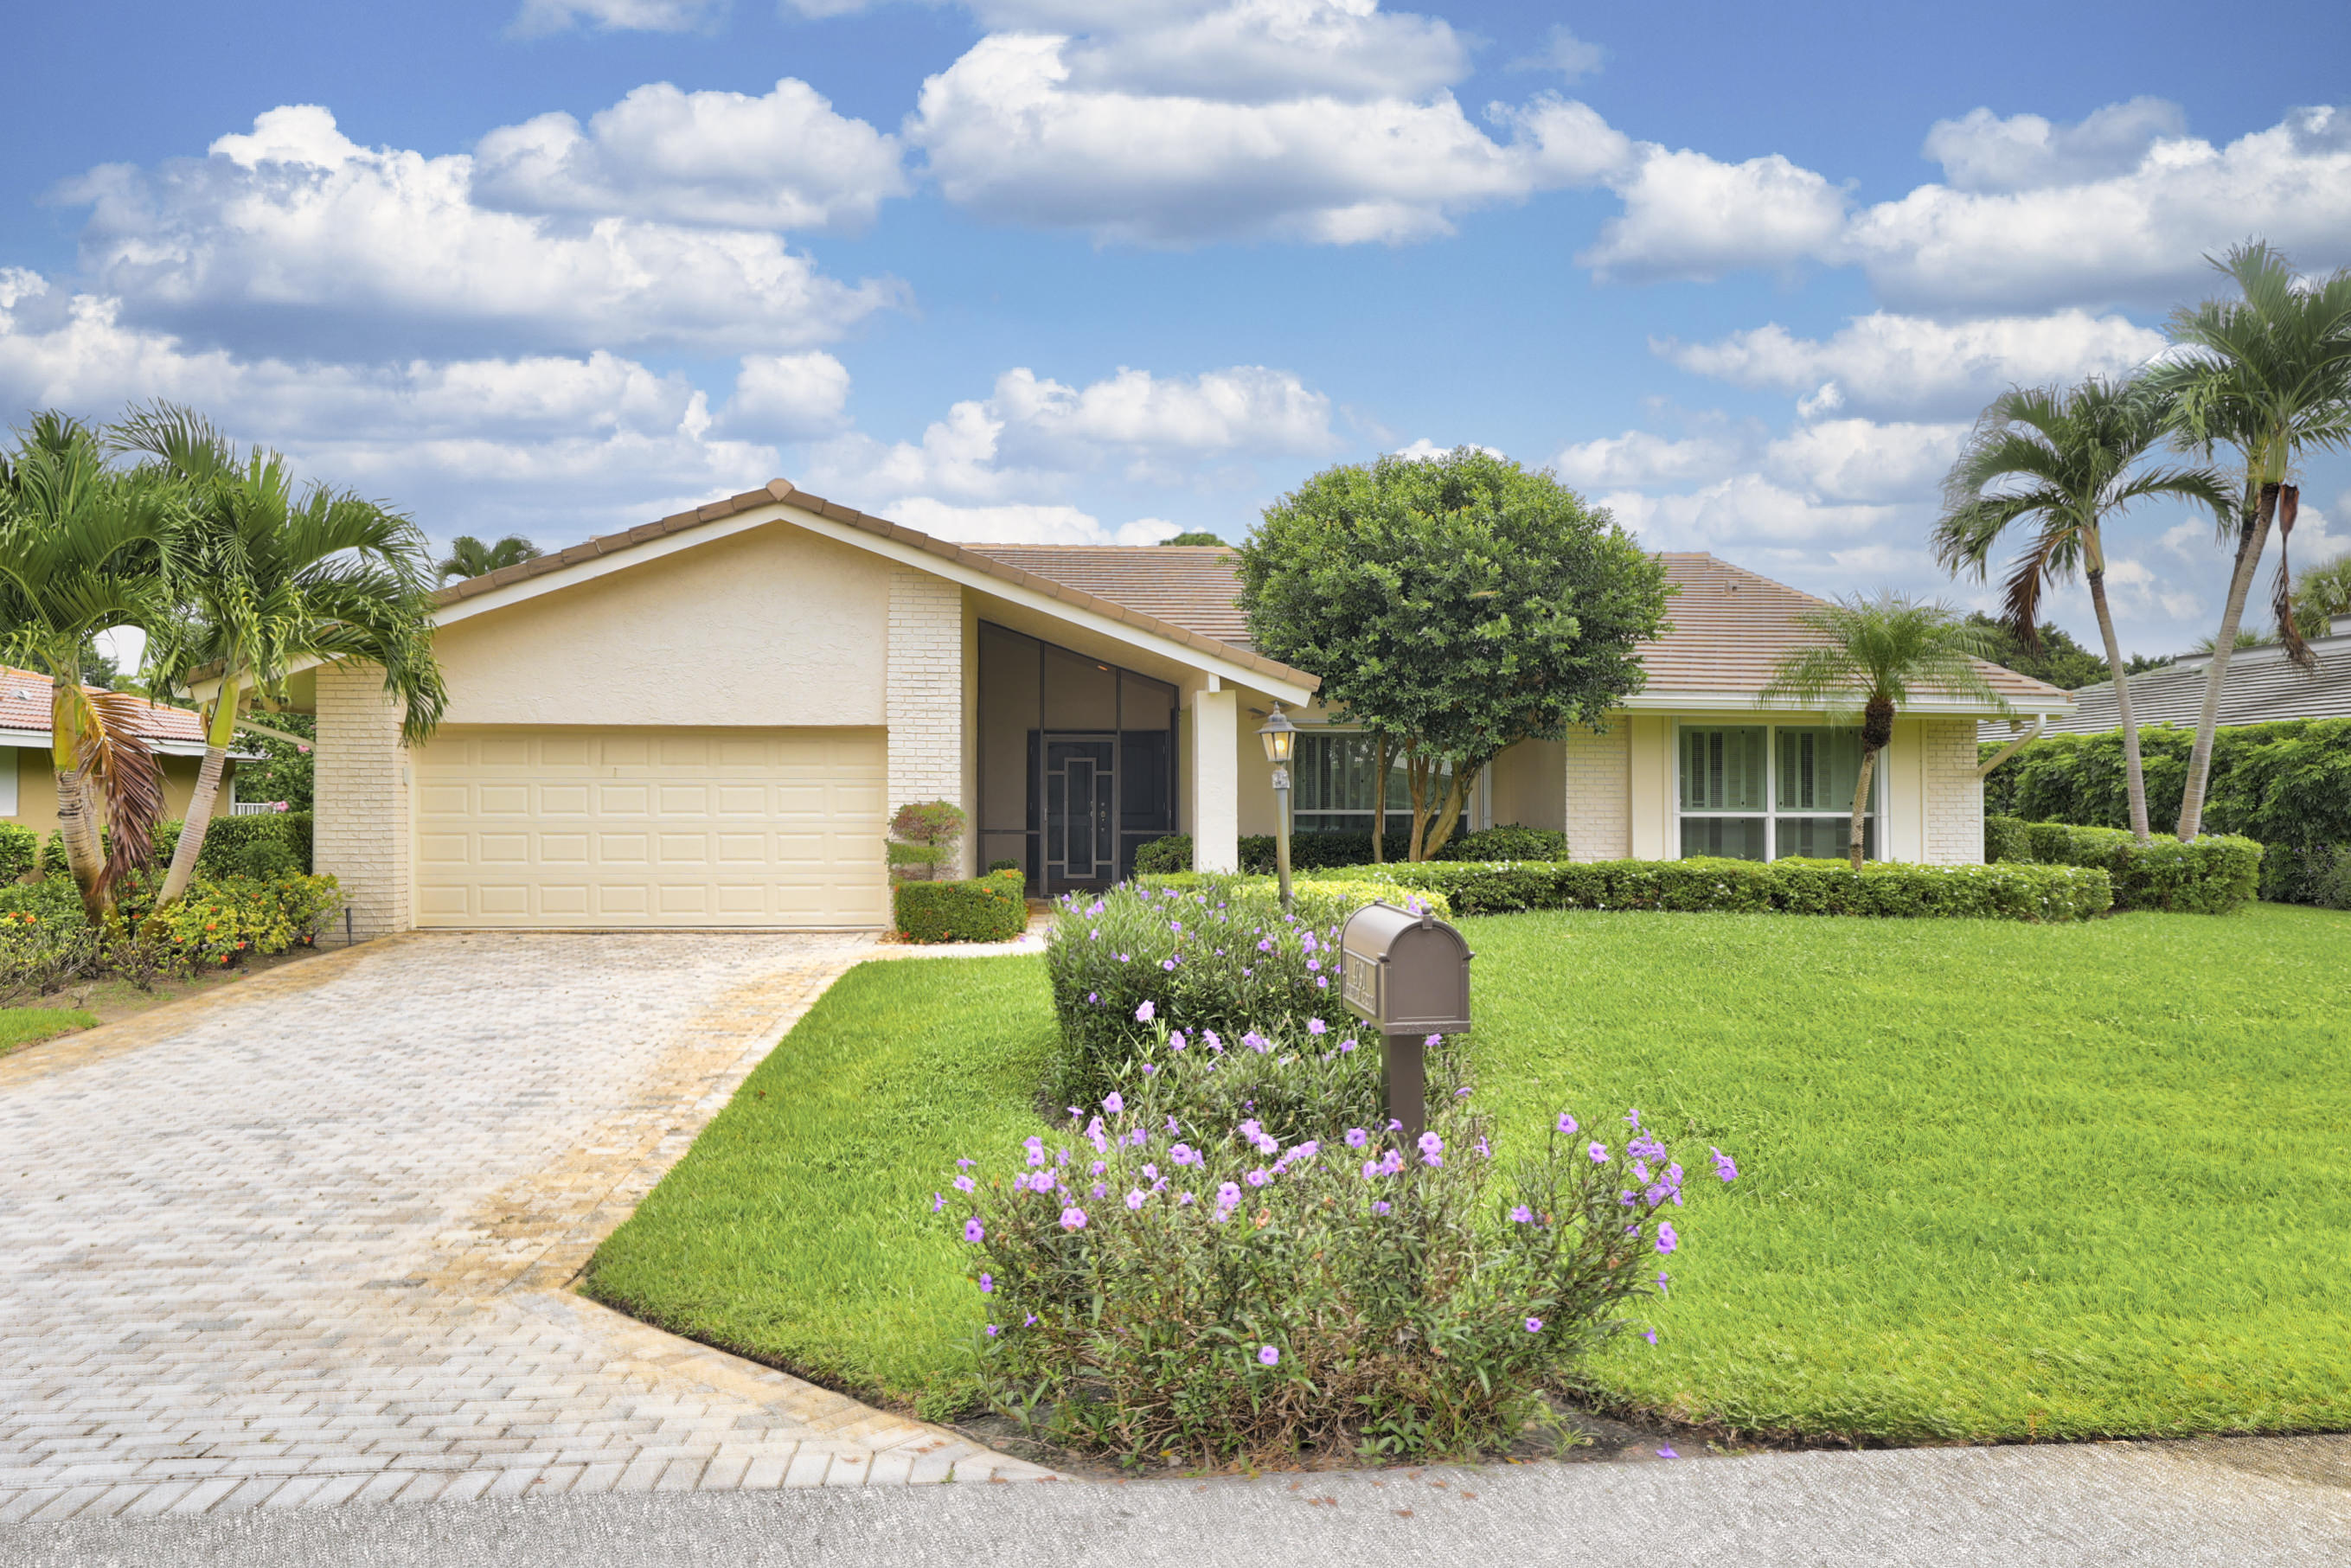 4791  Pineview Circle  For Sale 10754881, FL